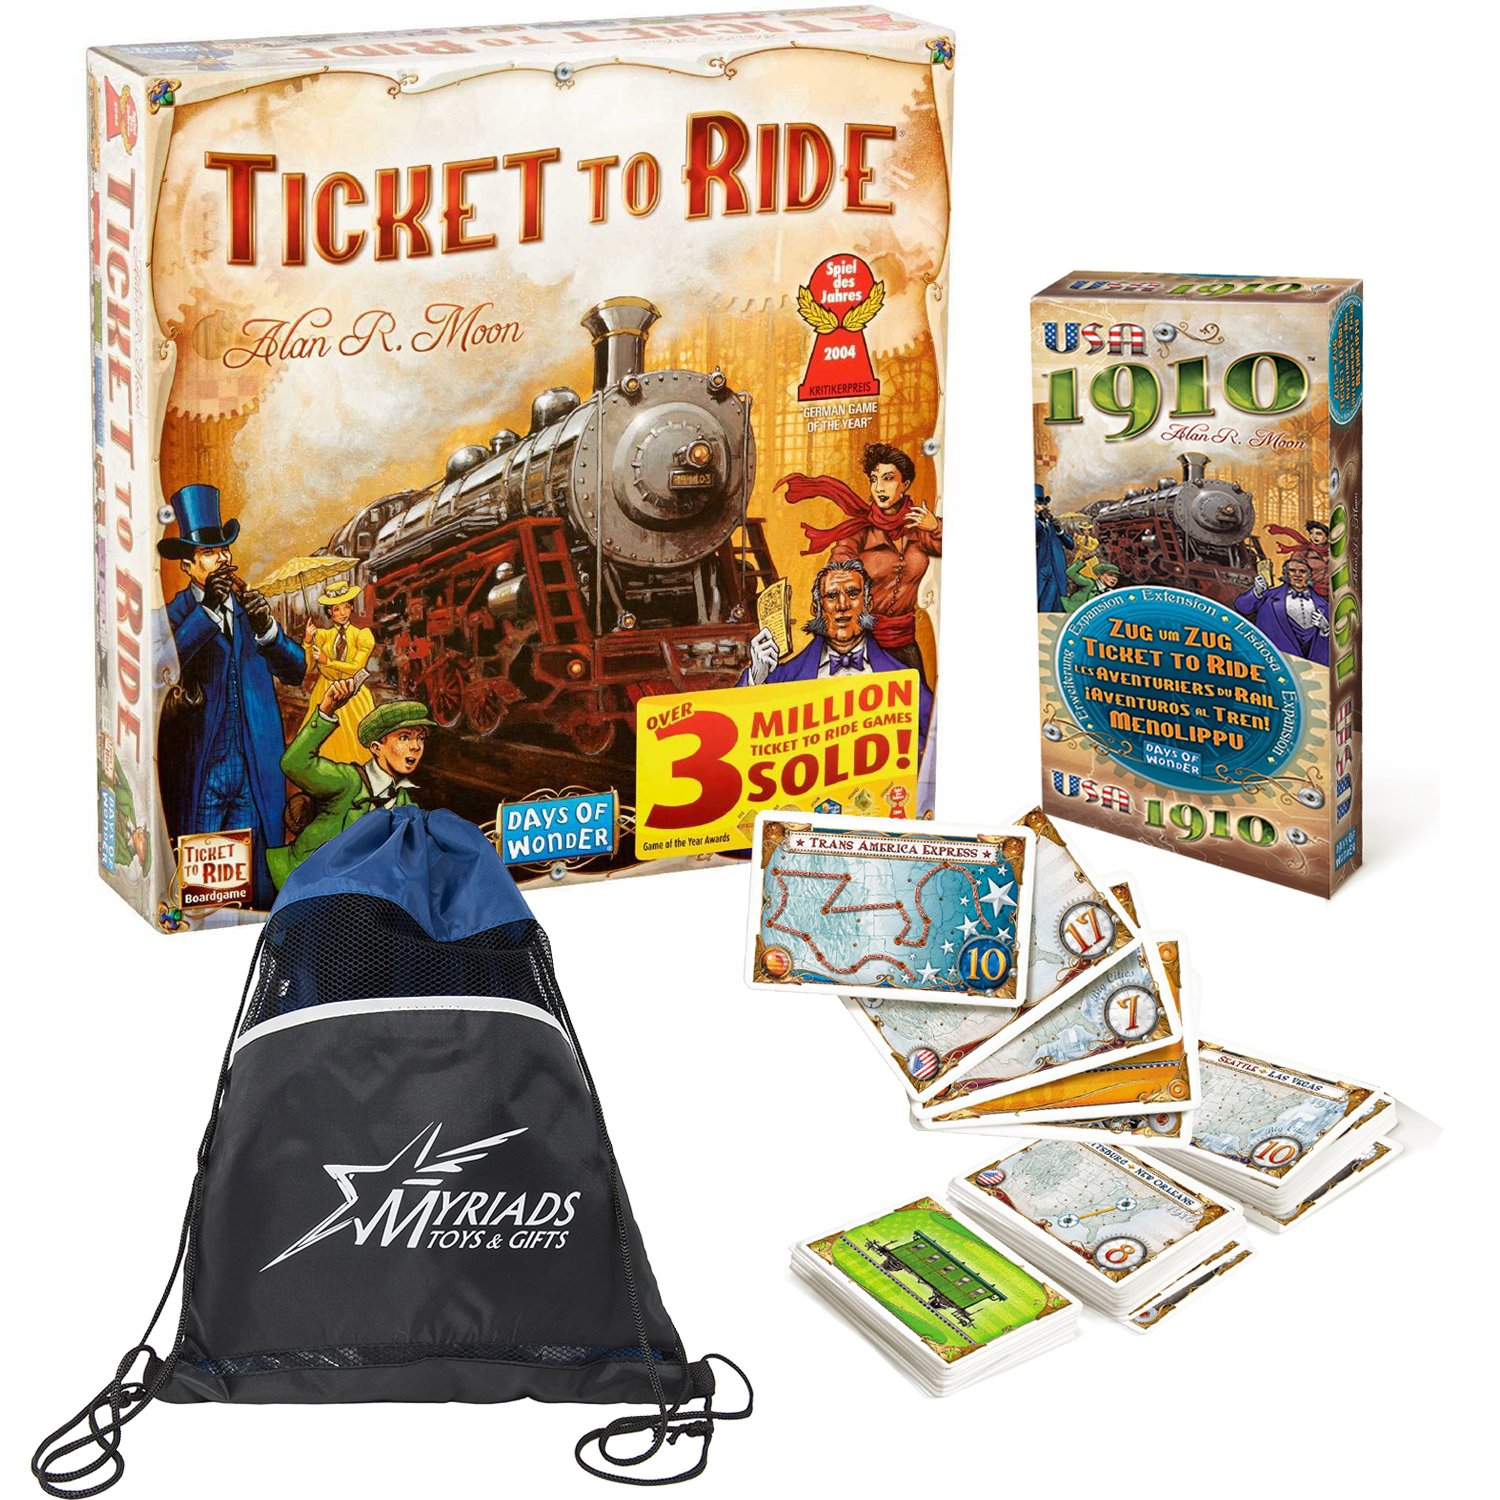 Days of Wonder Ticket To Ride with USA 1910 Expansion and Myriads Drawstring Bag